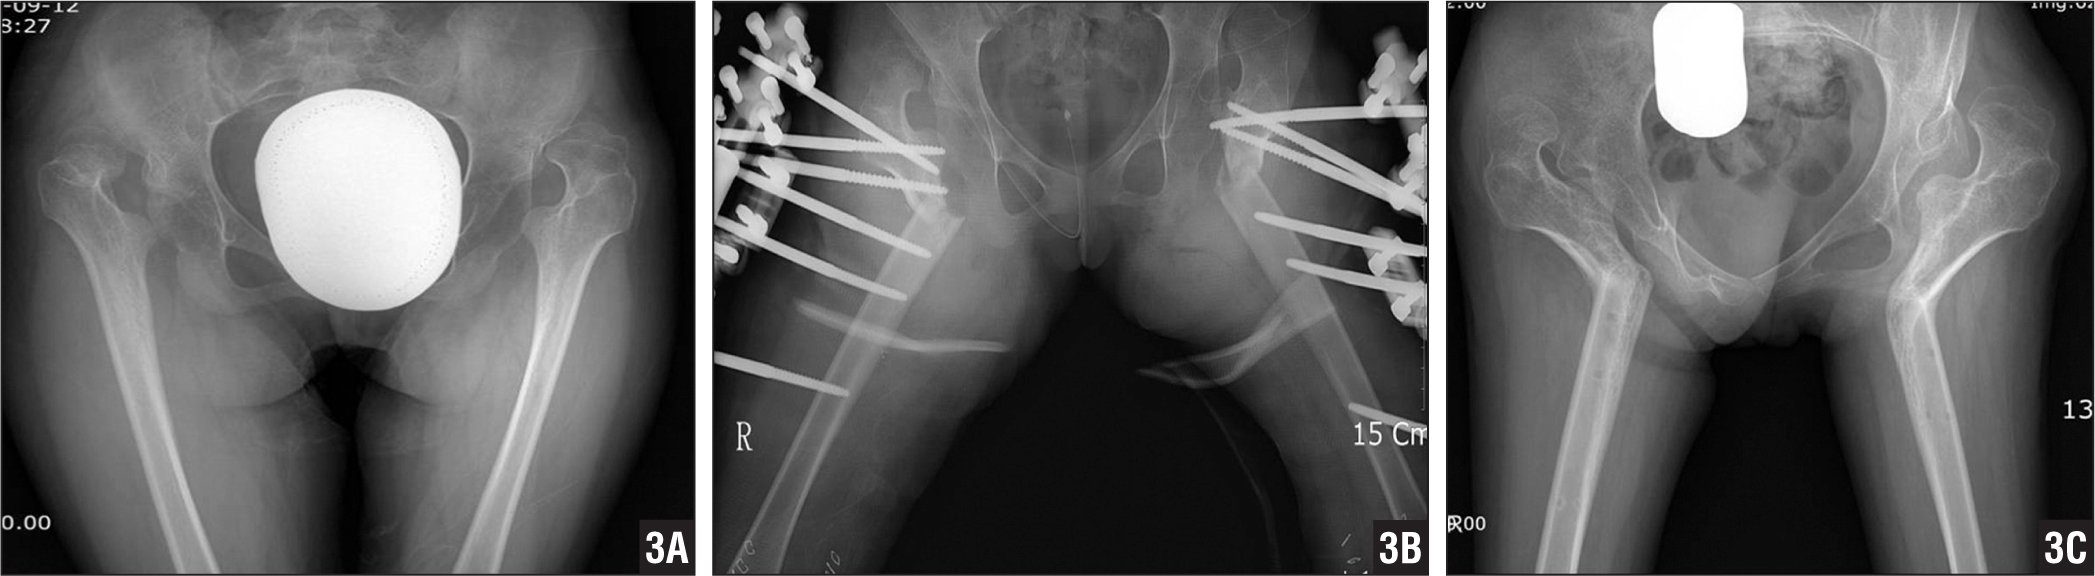 Anteroposterior radiograph of the pelvis with both hip joints in a 14-year-old girl showing bilateral hip dislocation with arthritic changes on the femoral head and a severely dysplastic acetabulum (A). Anteroposterior radiograph of the pelvis with both hips showing subtrochanteric valgus osteotomy performed using monlateral external fixator (B). Anteroposterior radiograph of the pelvis with both hips 1 year postoperatively showing the well-healed osteotomy with a valgus angle of approximately 50° (C).